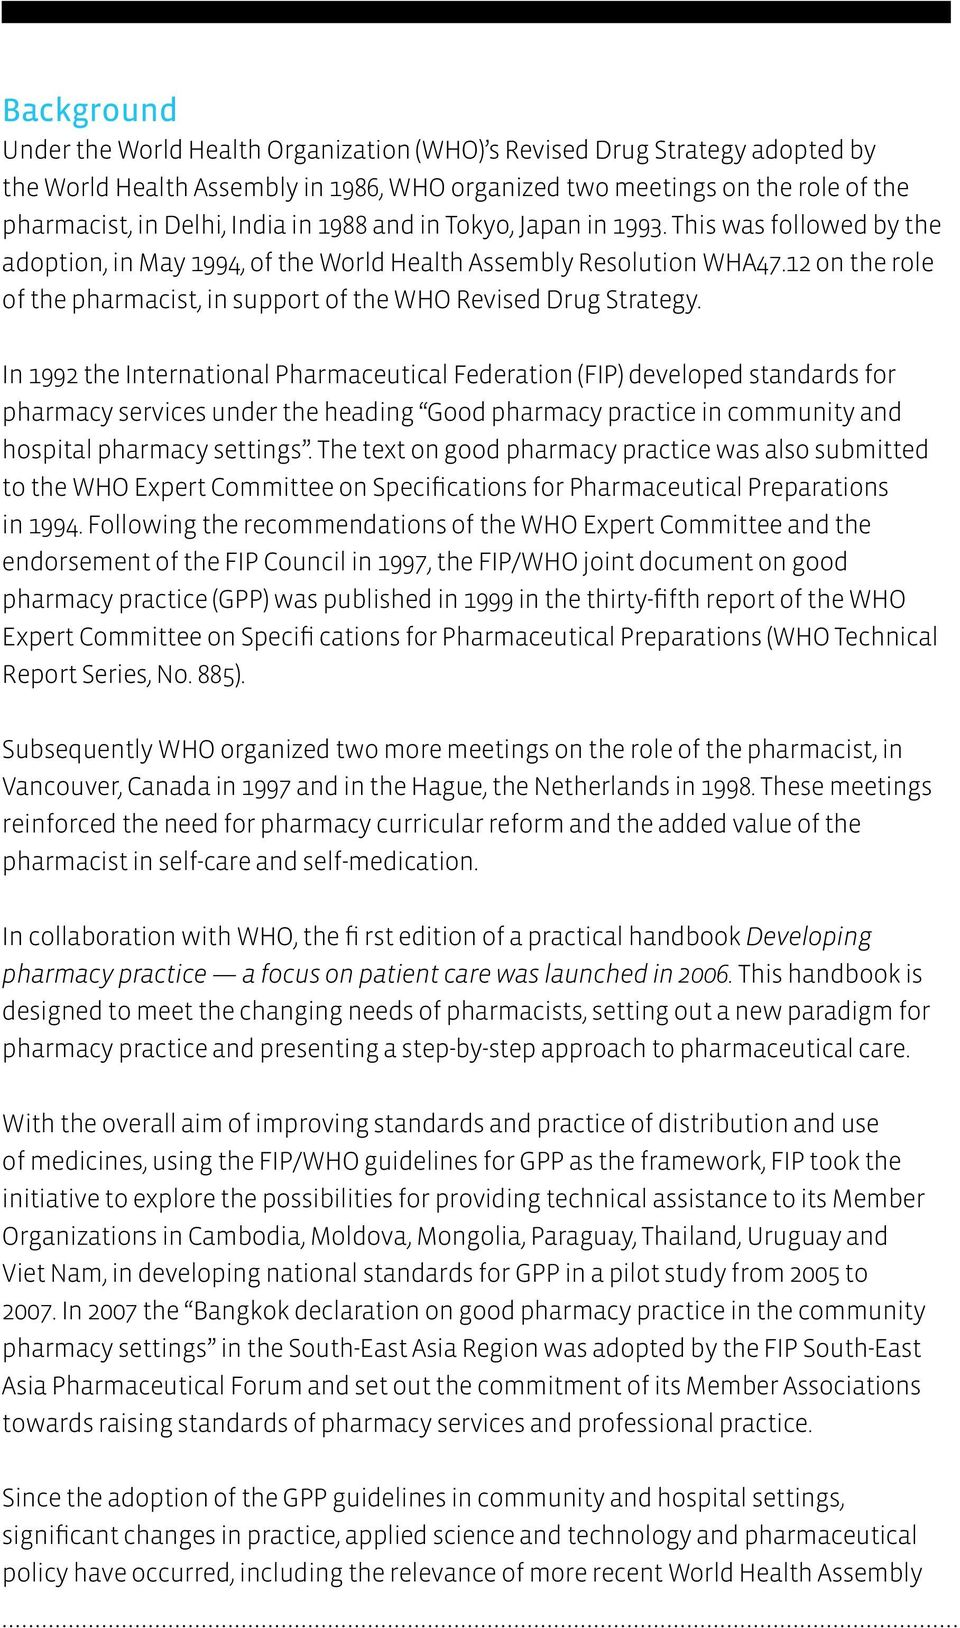 12 on the role of the pharmacist, in support of the WHO Revised Drug Strategy.